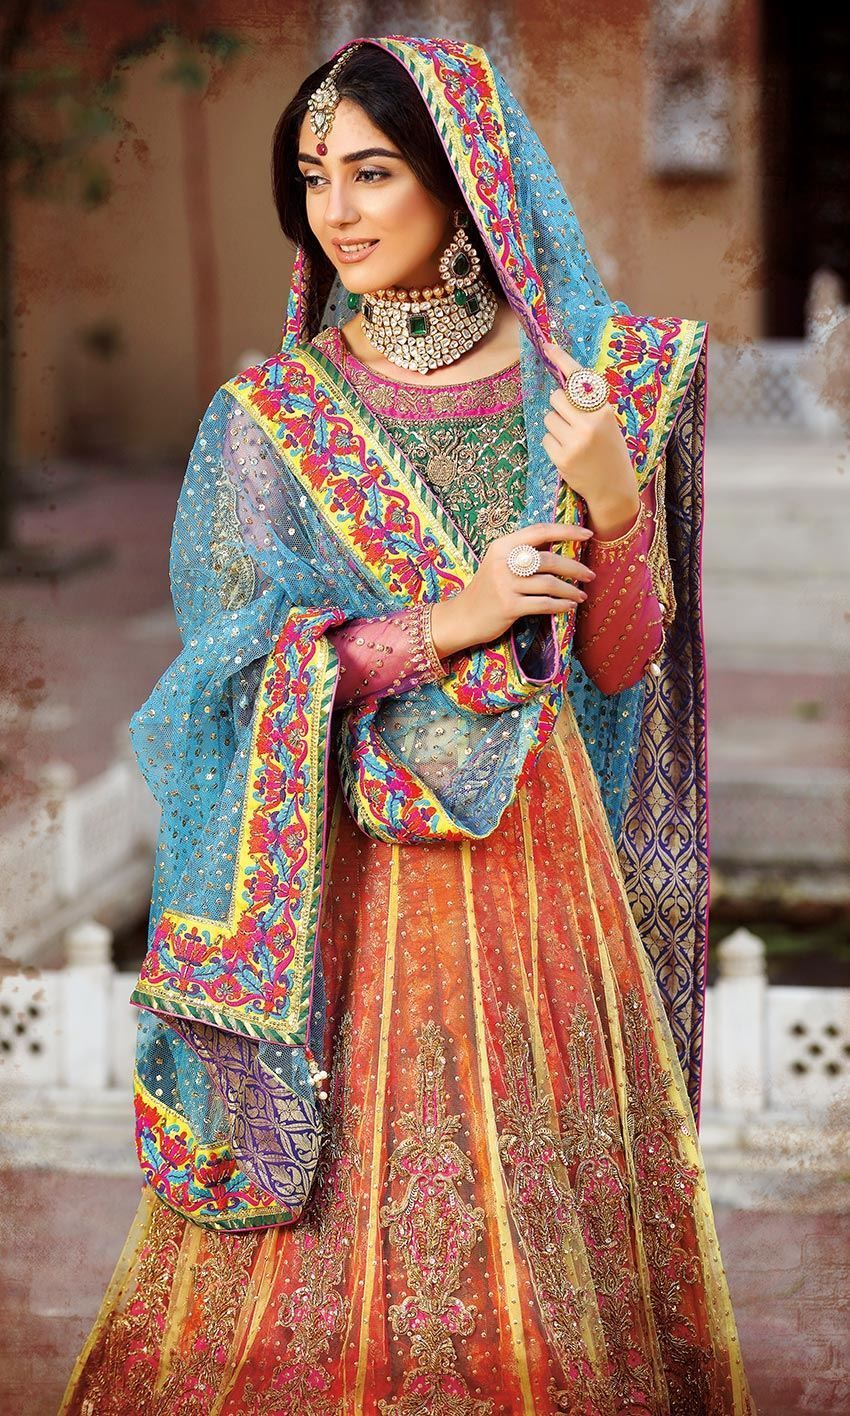 Picture of Scherezade | Indian wedding guest outfits | Pinterest ...